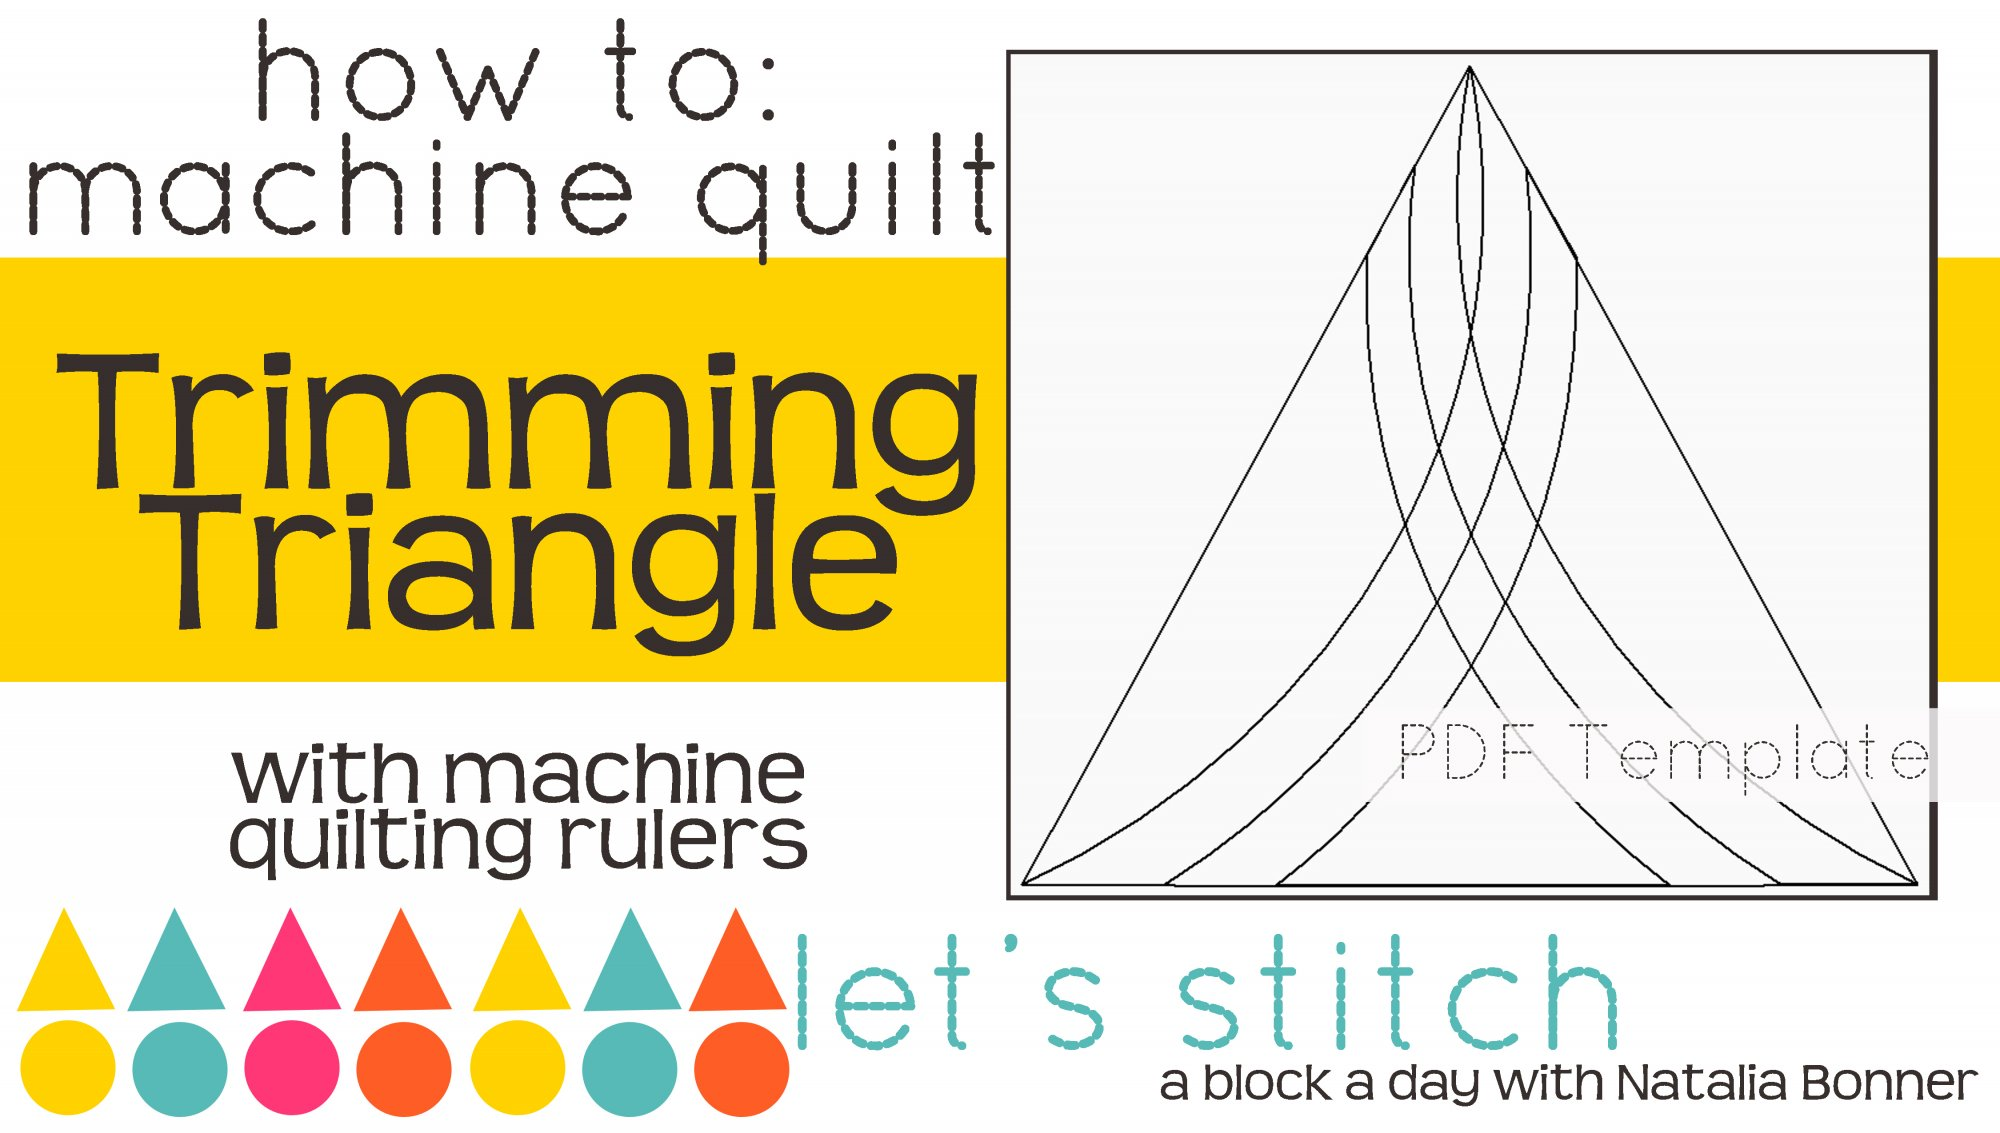 Let's Stitch - A Block a Day With Natalia Bonner - PDF - Trimming Triangle